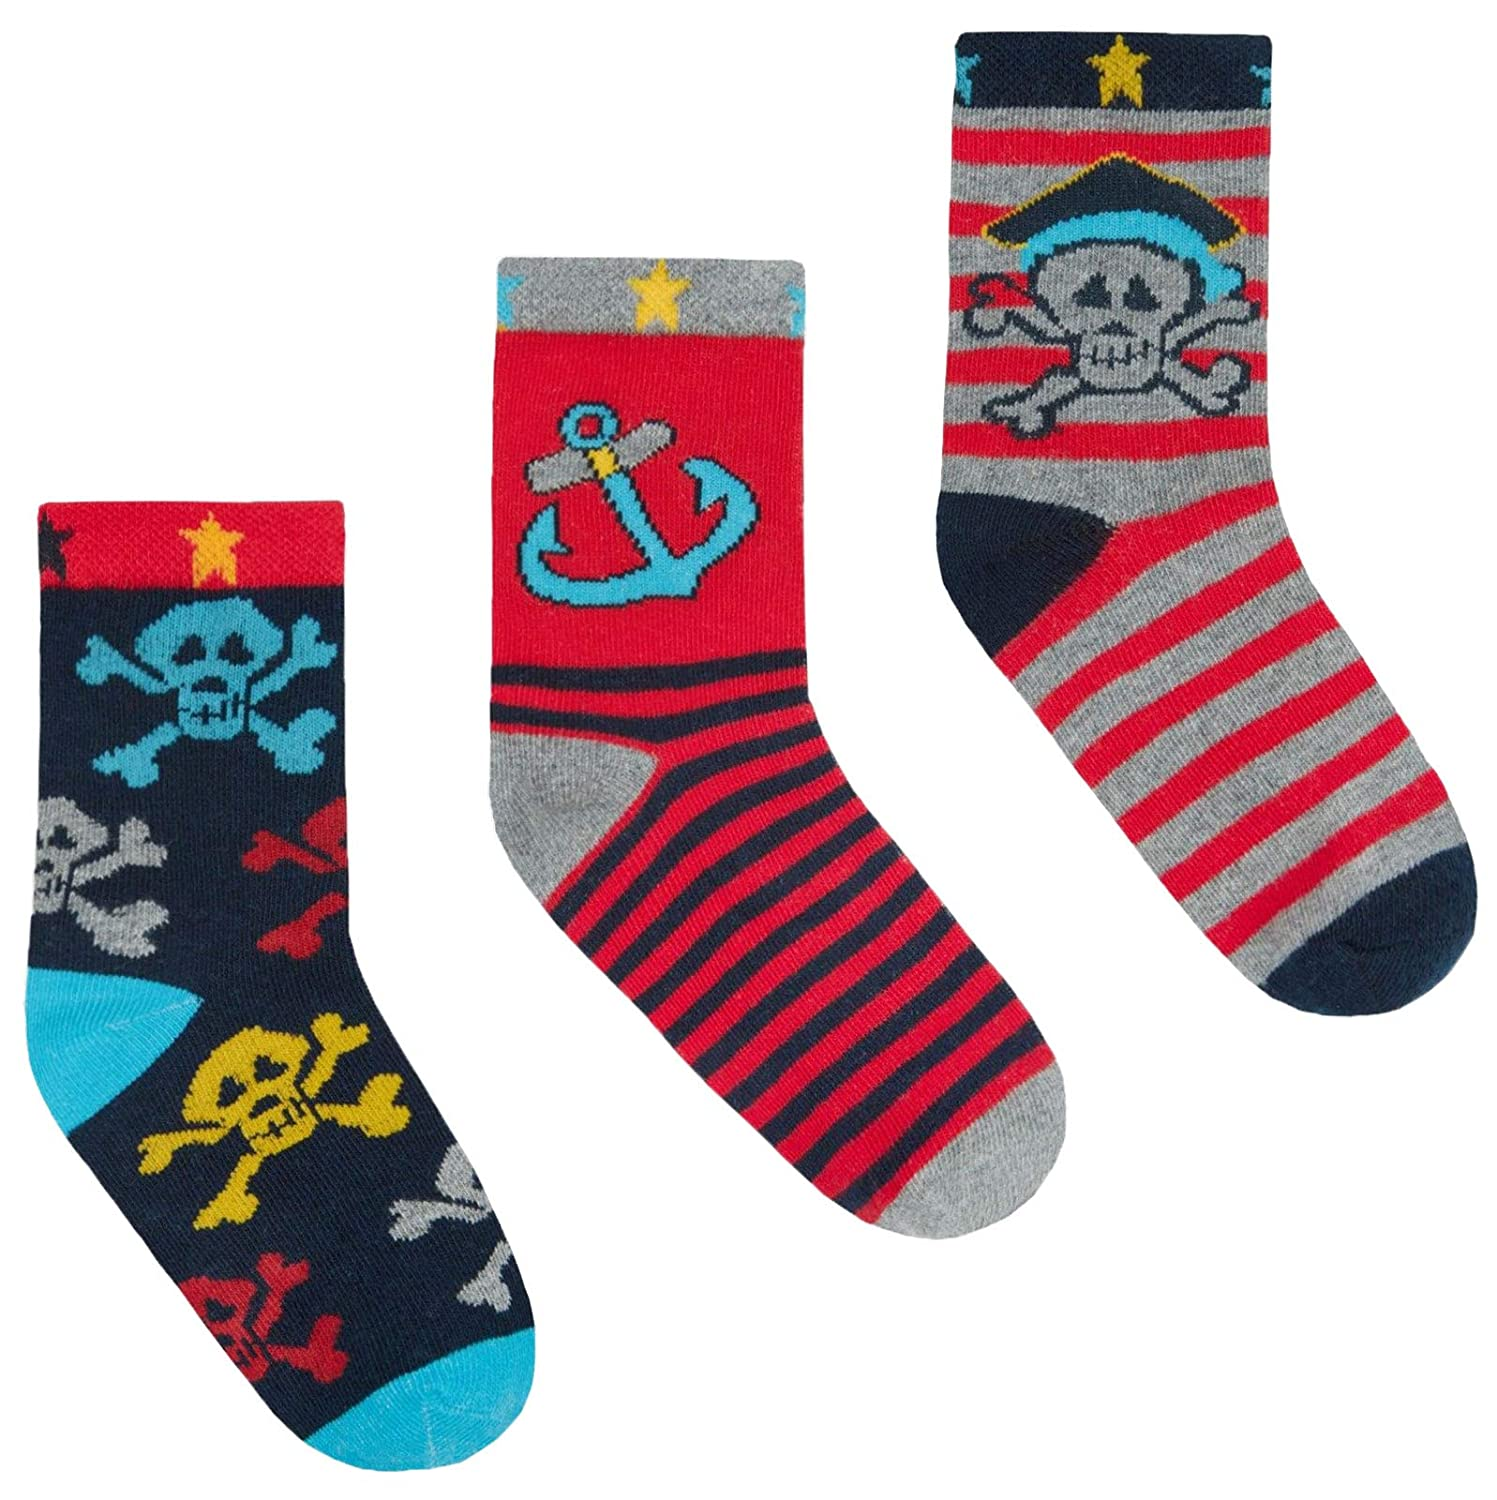 JollyRascals 3 Pairs Boys Socks New Kids Sports Ankle Socks with Funny Print Faces or Pirate Boy 3 PACK Socks Black Multi Red Green Blue Stripe UK Sizes 6-8.5 9-12 12.5-3.5 and 4-6